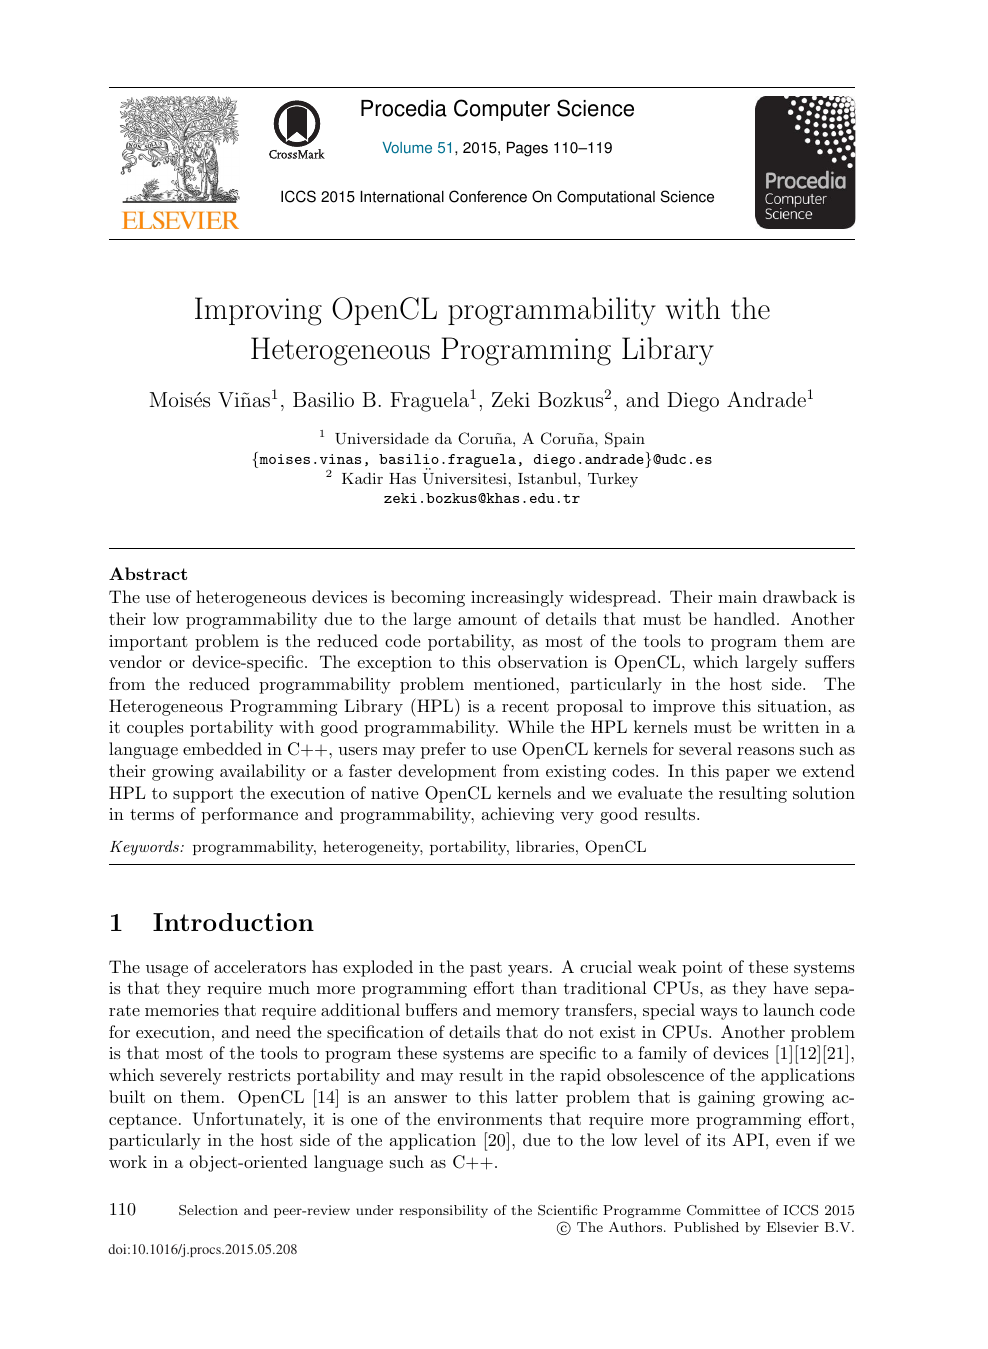 Improving OpenCL Programmability with the Heterogeneous Programming